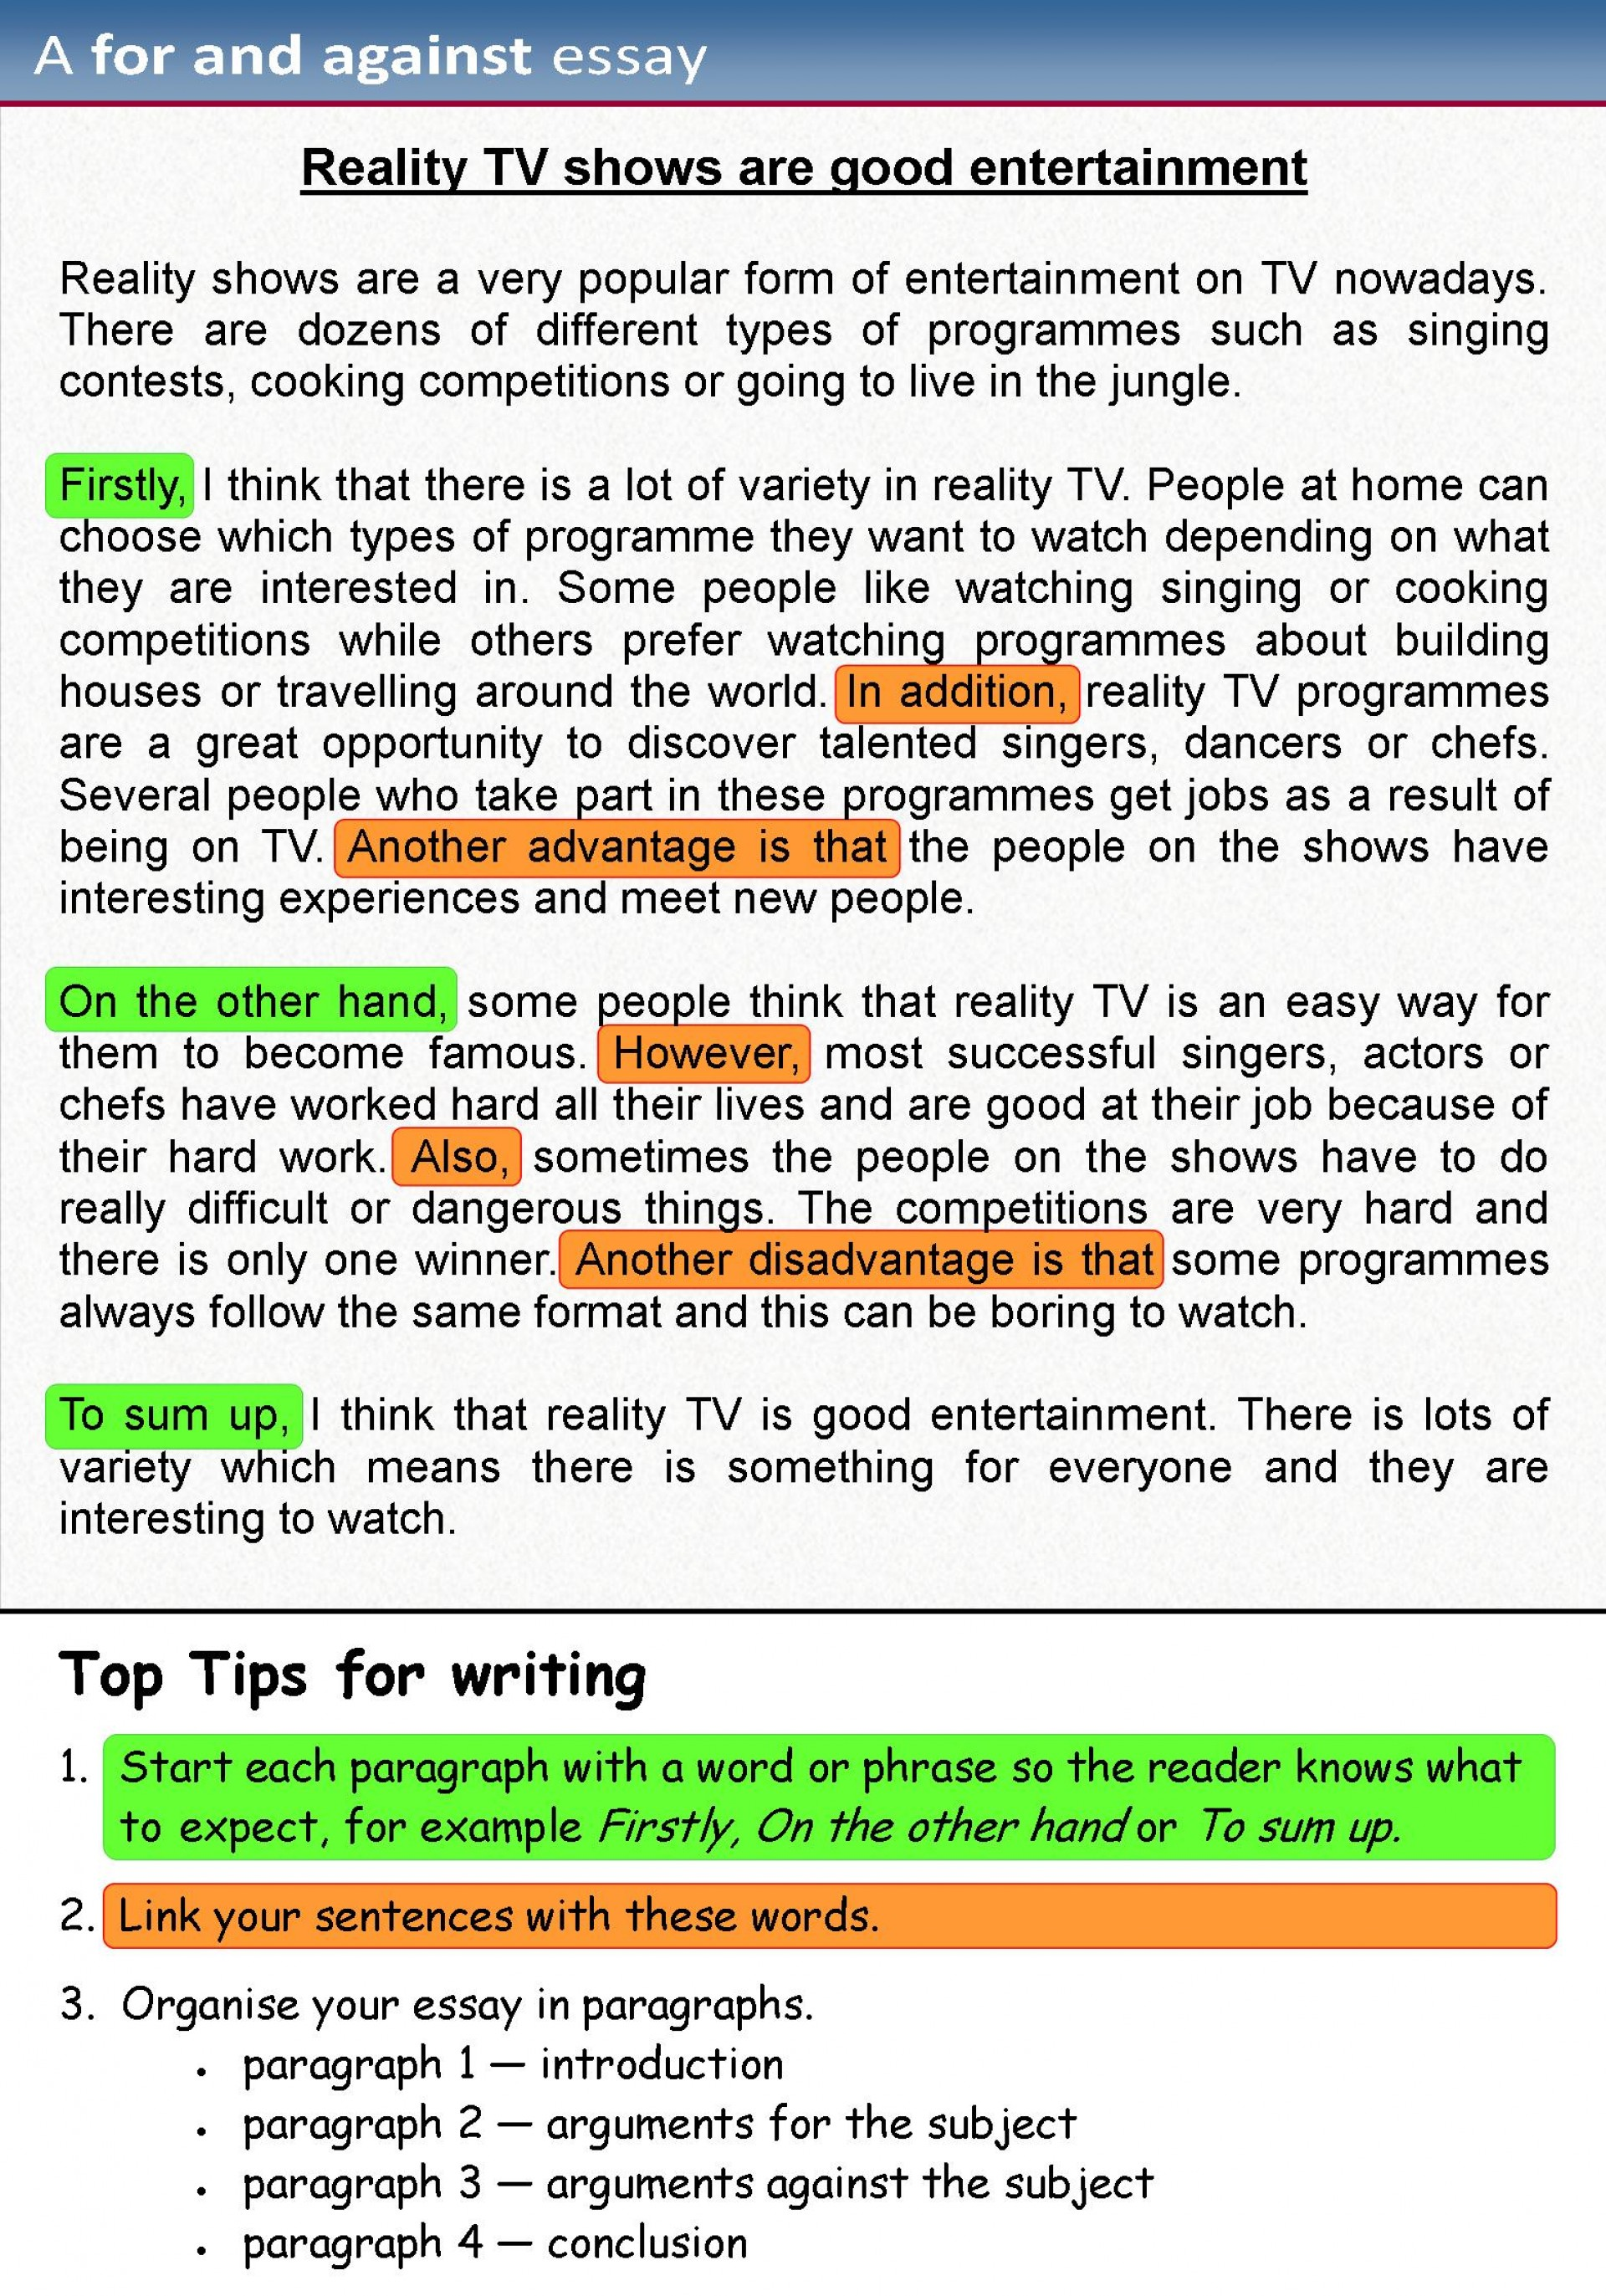 024 Tips To Write Good Essay Example For Against 1 Marvelous A Sat Descriptive Narrative 1920